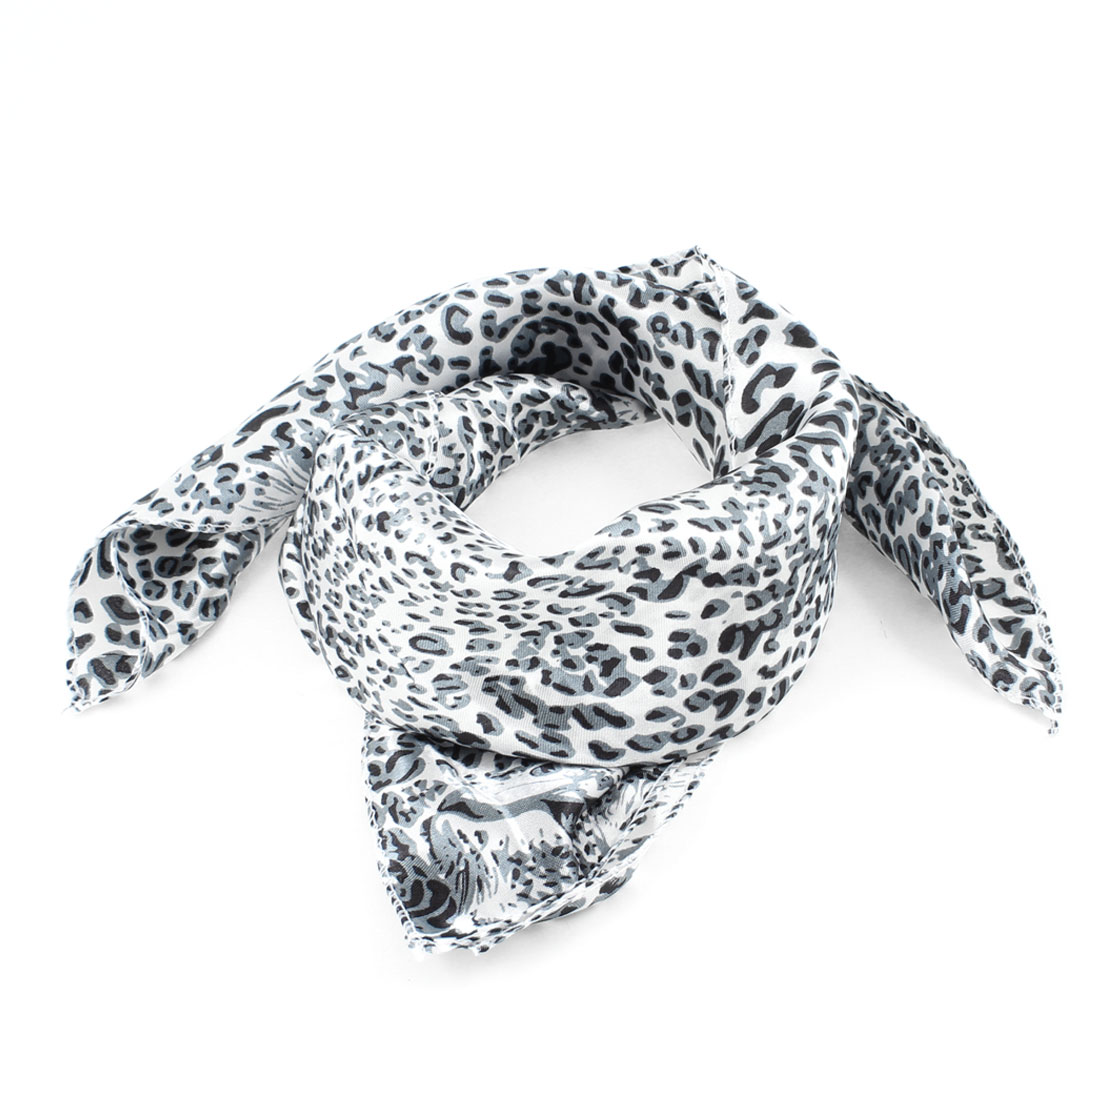 Airhostess Leopard Print Polyester Magic Scarf Wrap Neckerchief